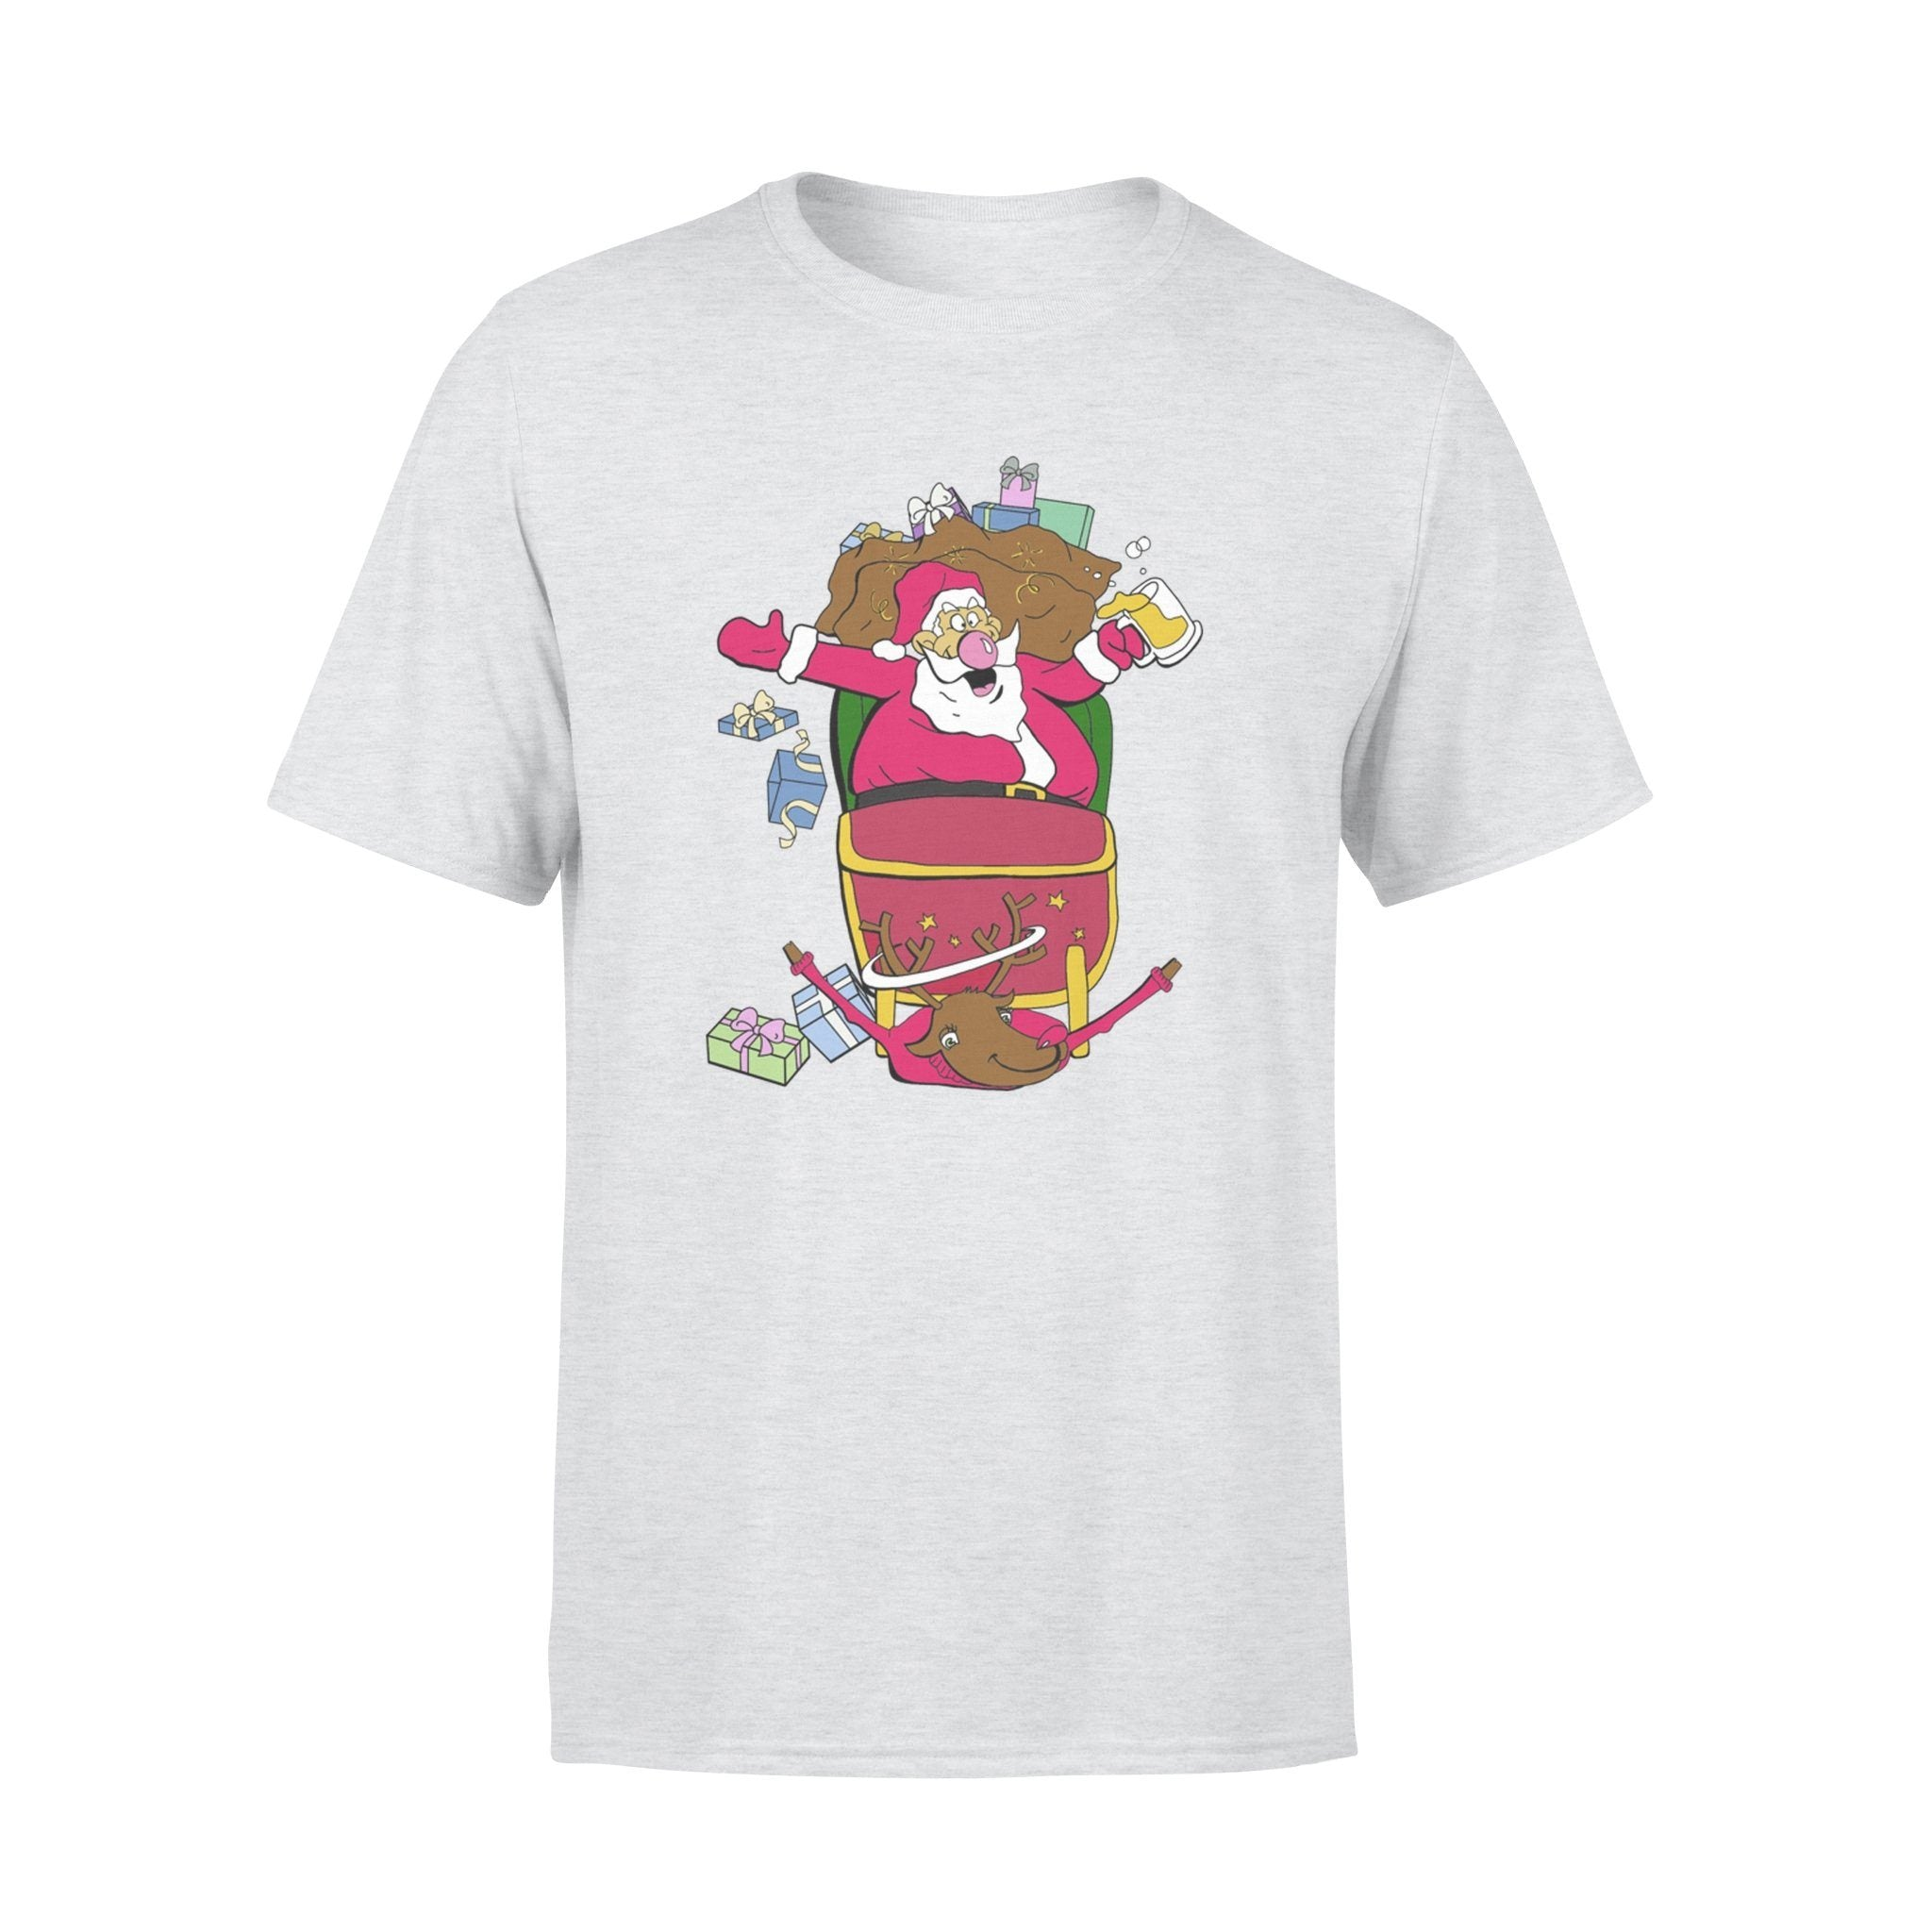 Funny Christmas Fat Drunk Santa Claus and Reindeer T-shirt